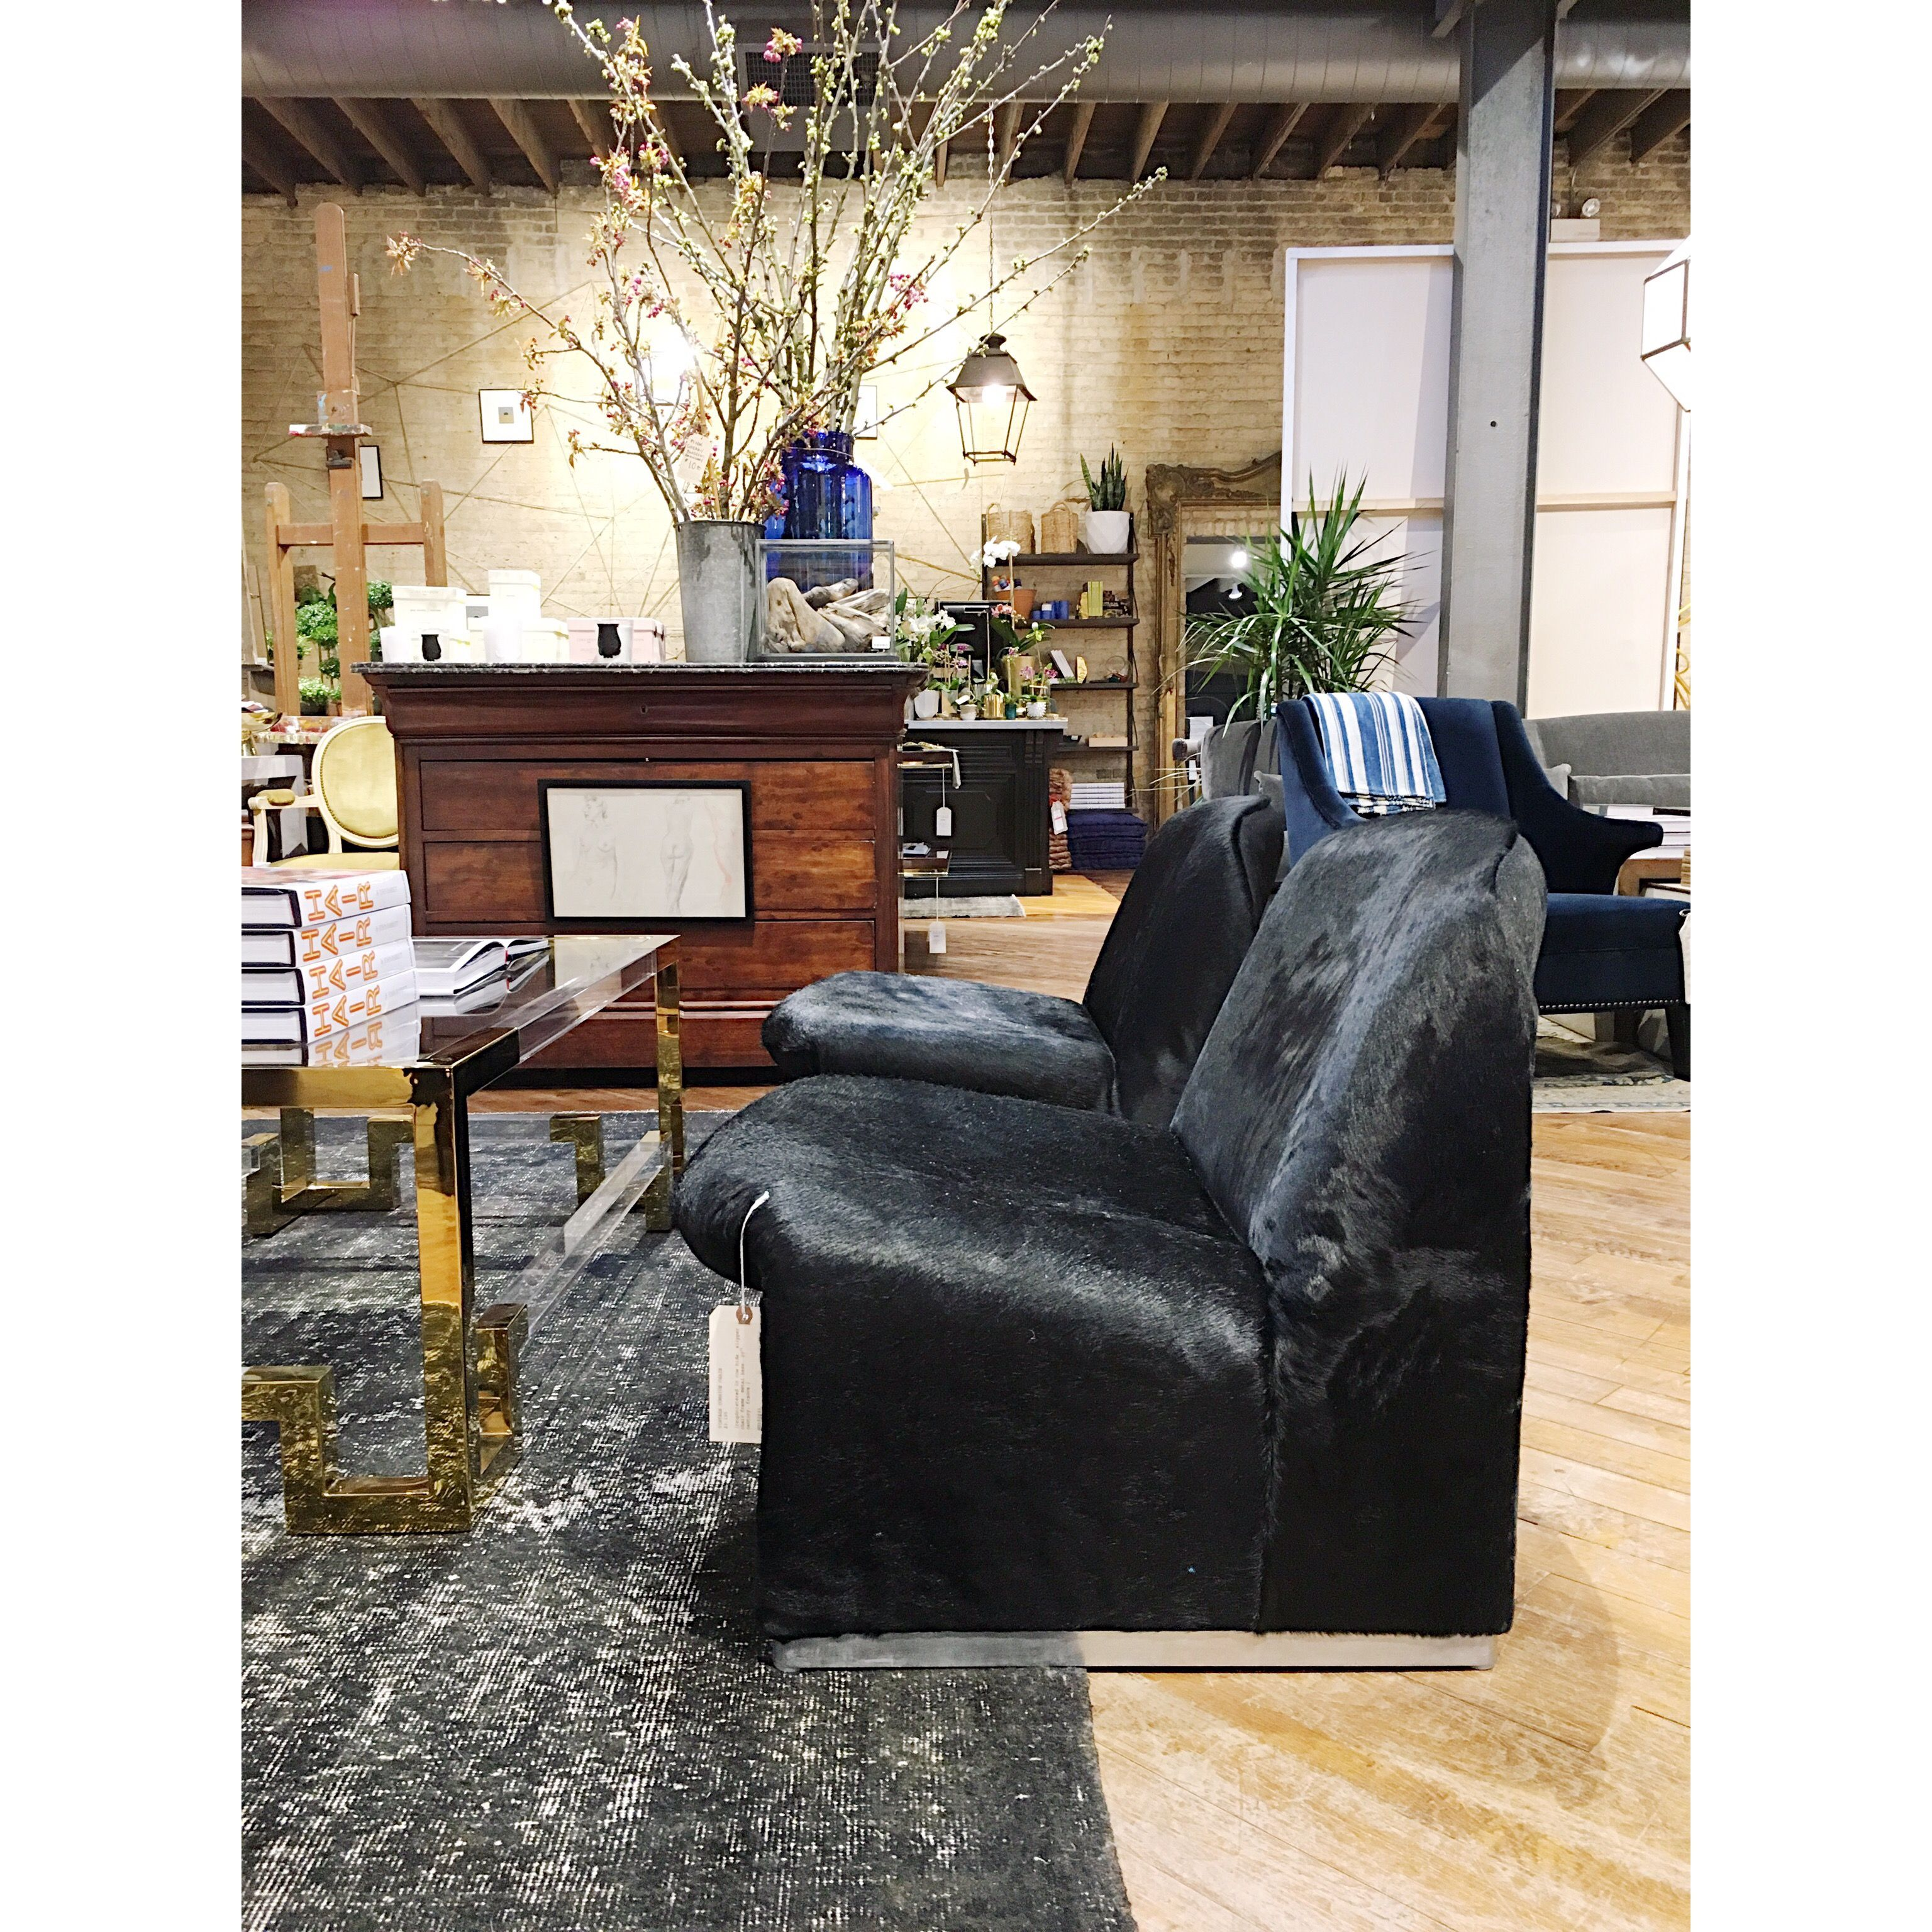 Signature mix of vintage and new at the Jayson Home